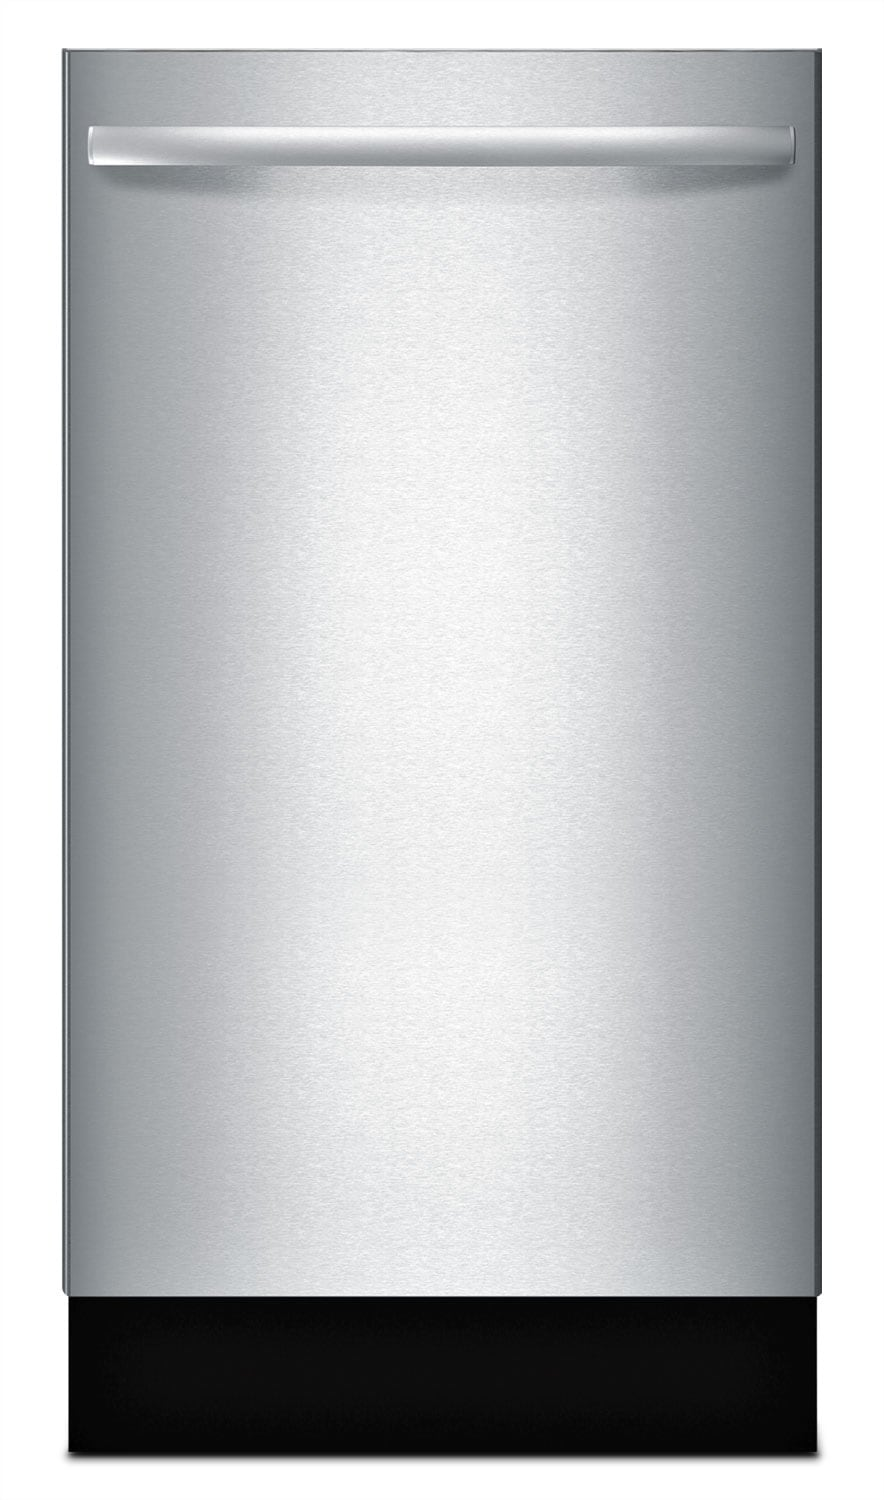 Bosch 18 Quot 800 Series Bar Handle Dishwasher Stainless